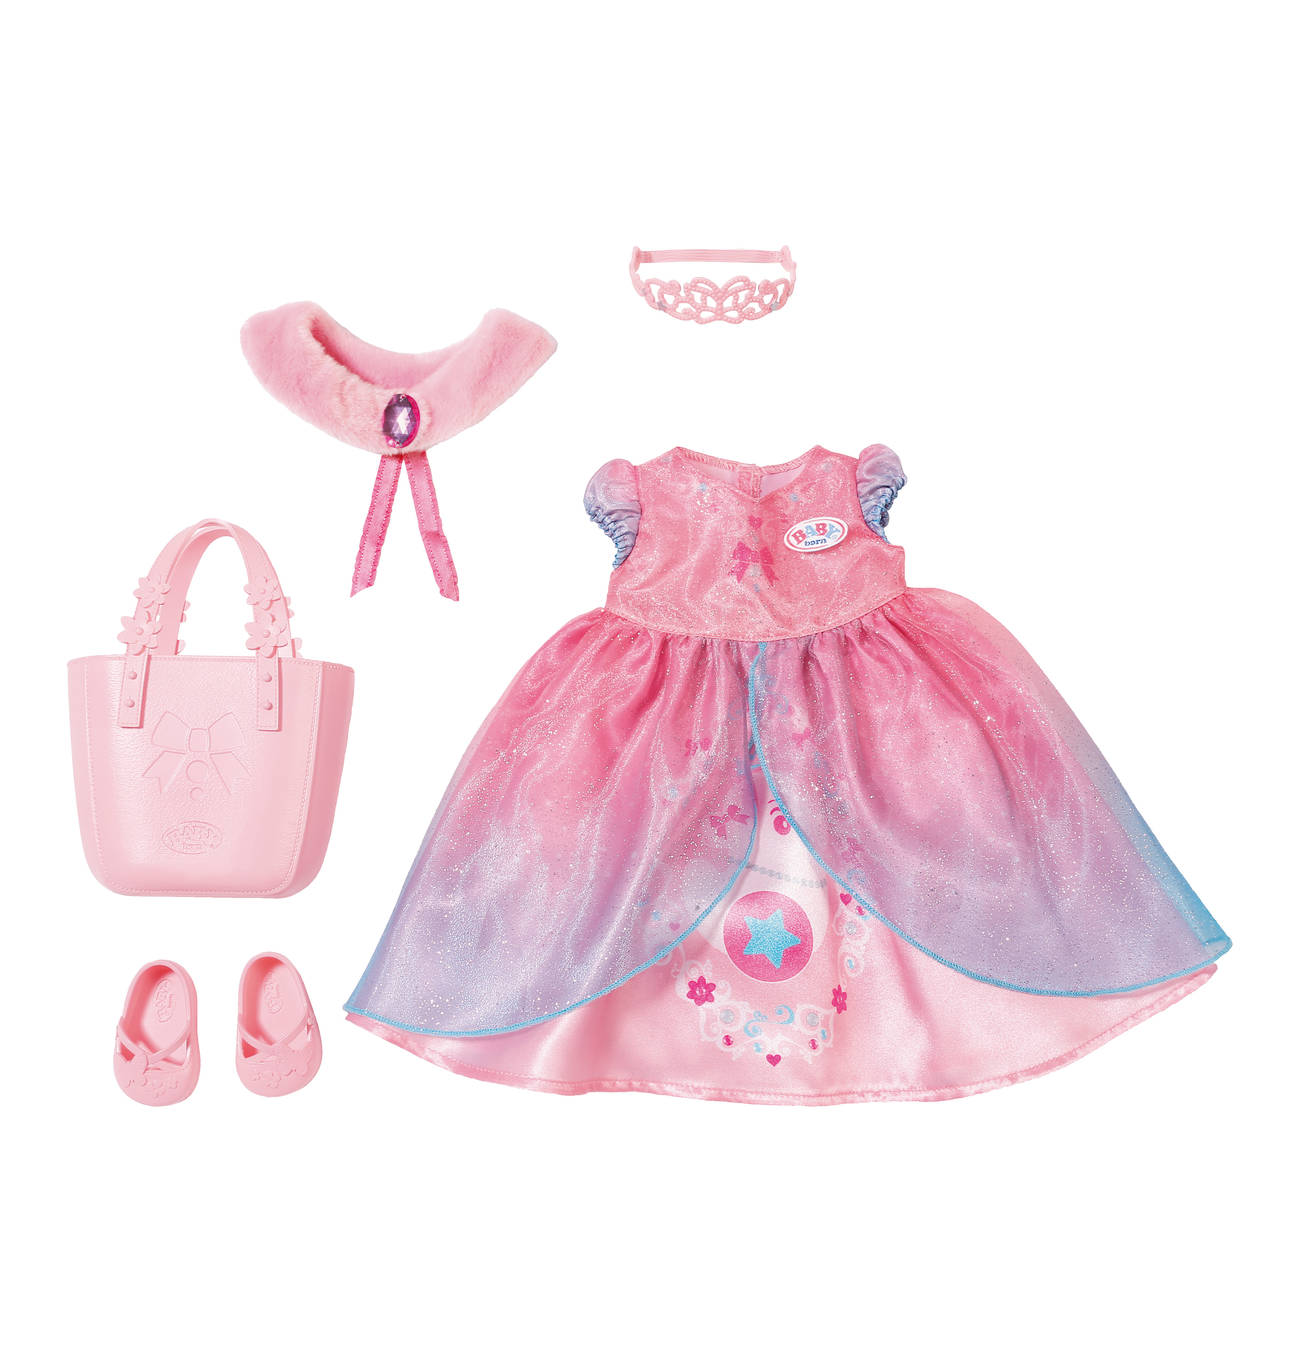 BABY born Boutique Deluxe Shopping Prinzessin | Products in